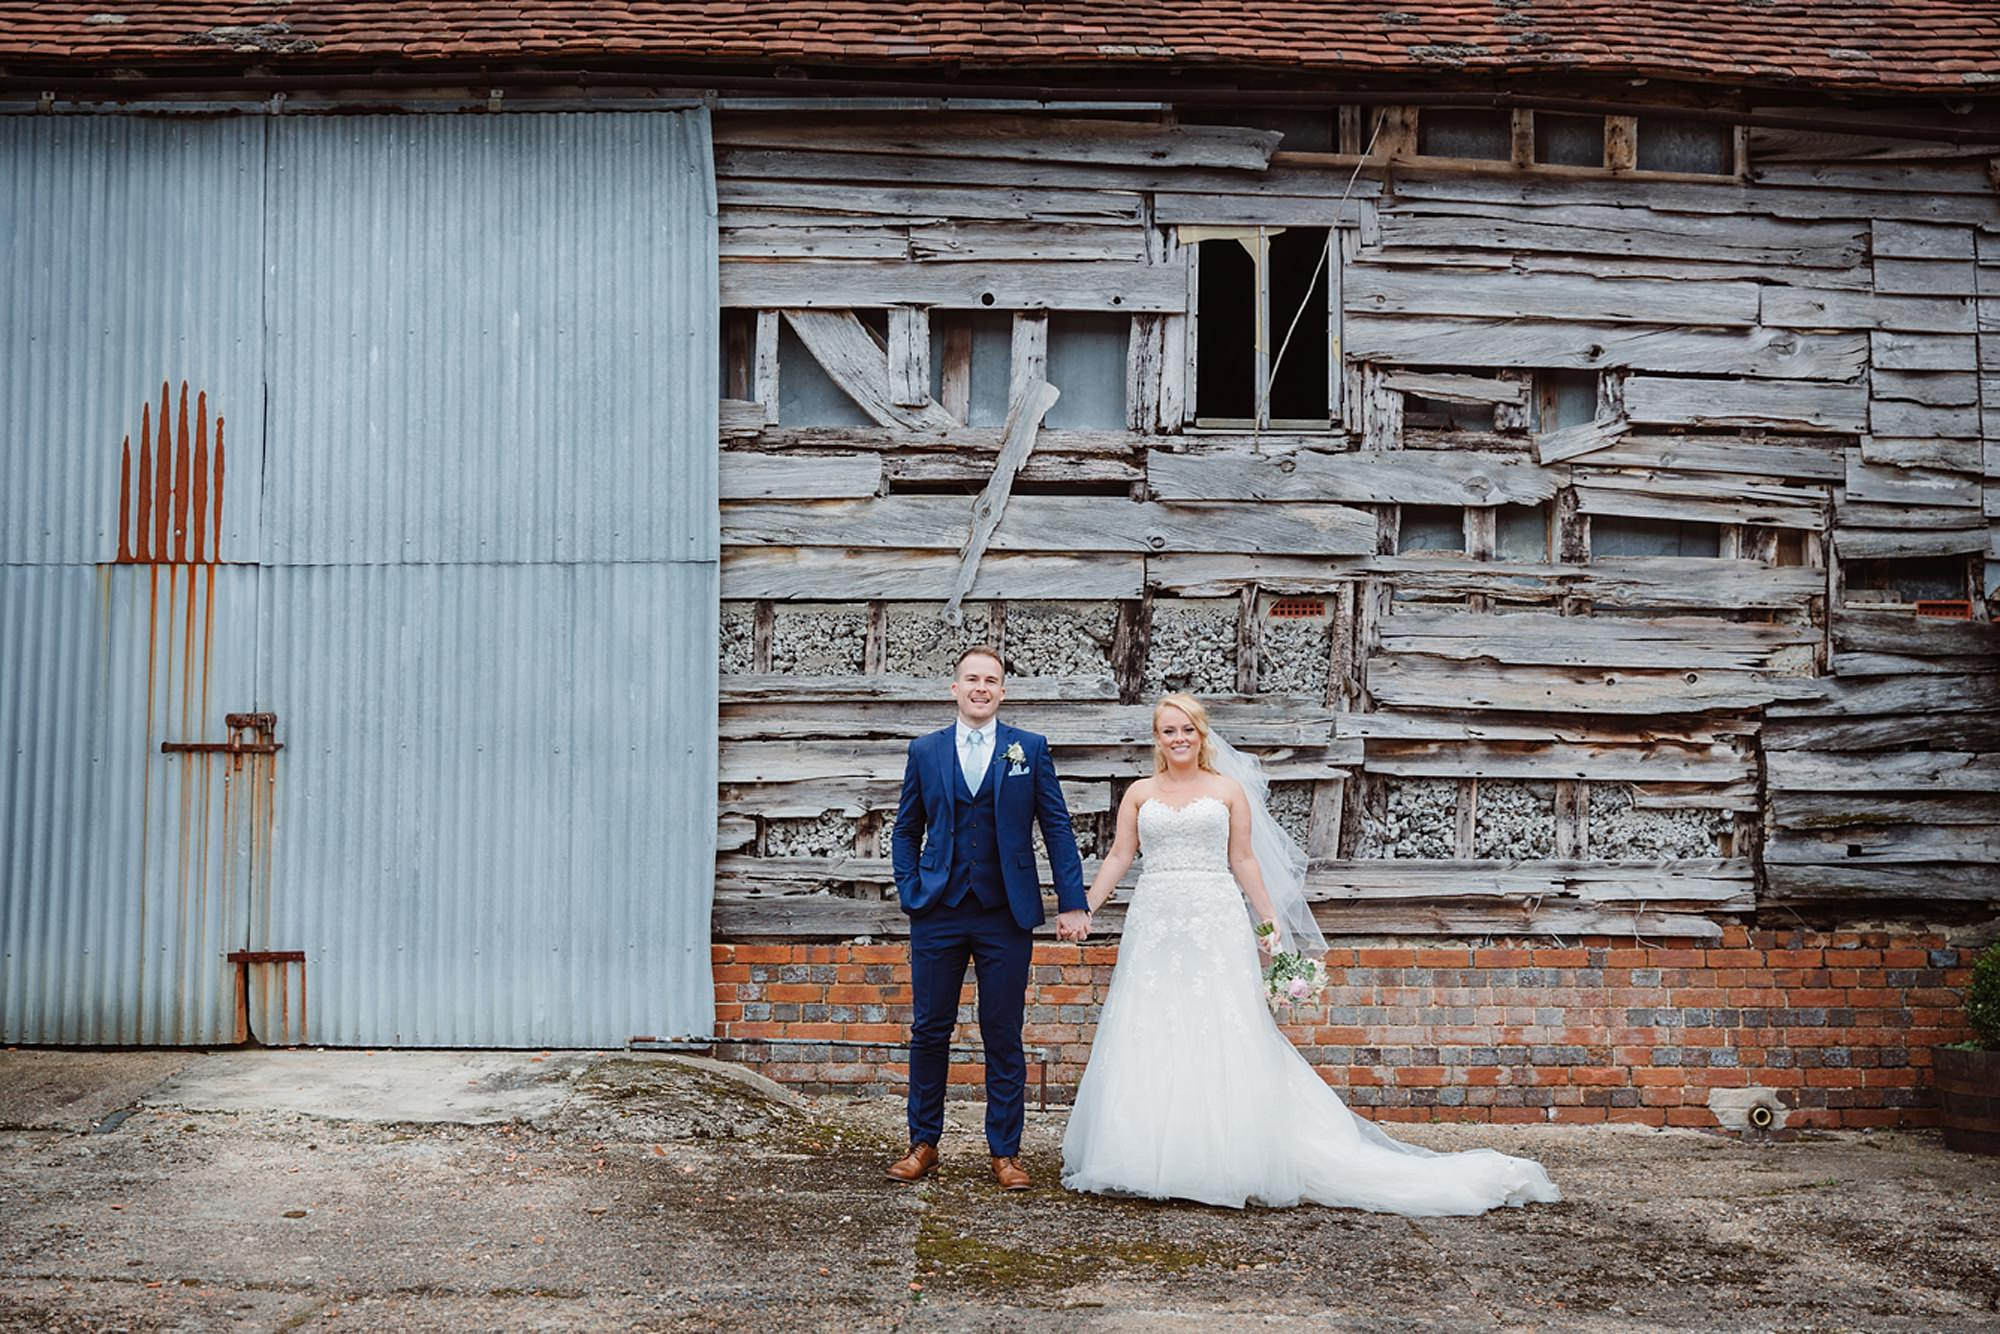 Old Greens Barn Newdigate wedding photography bride and groom industrial portrait